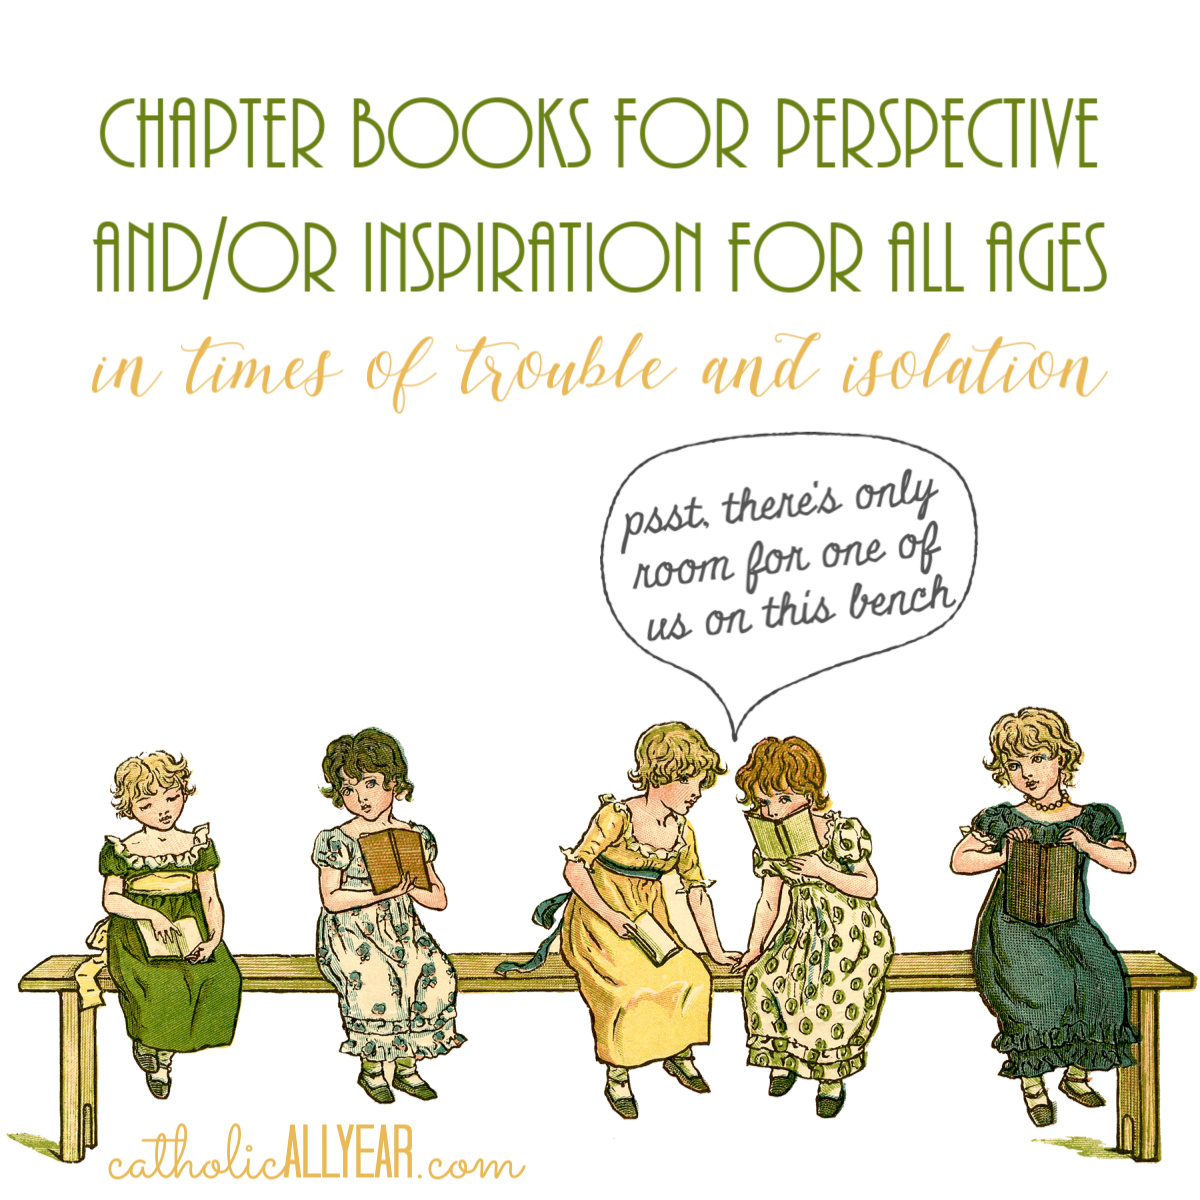 Chapter Books for Perspective and/or Inspiration for All Ages in Times of Trouble and Isolation